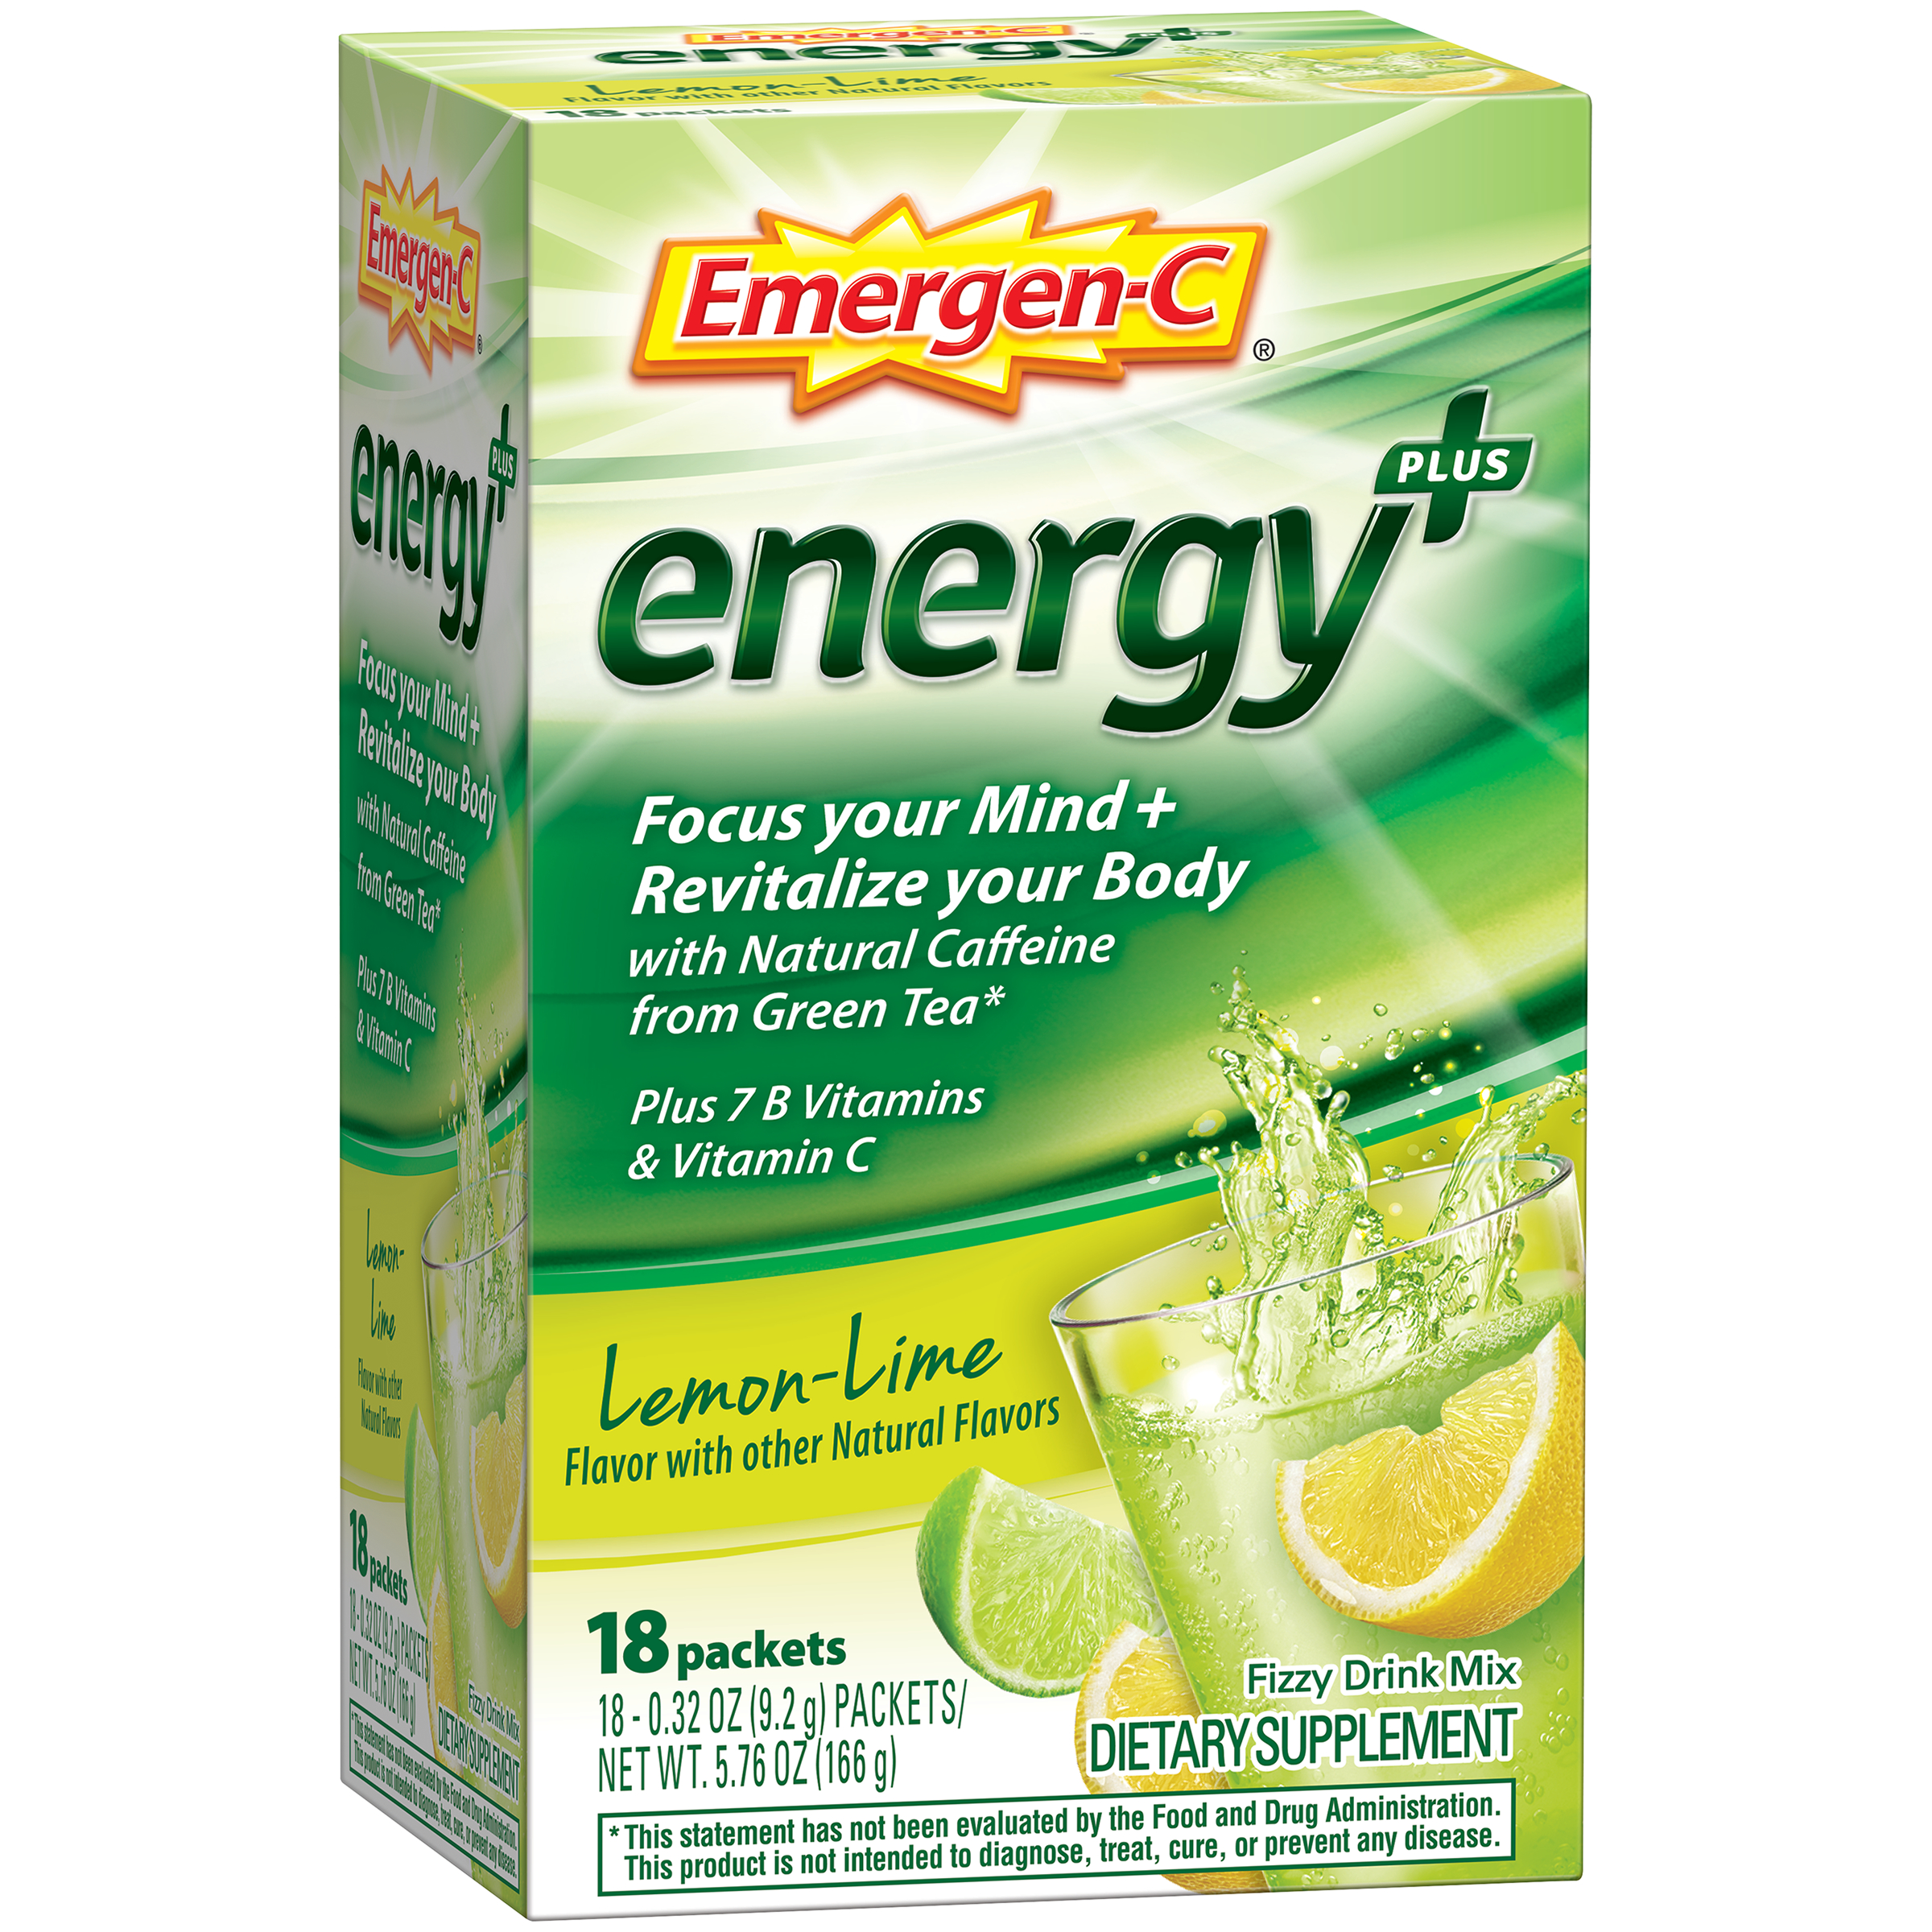 Emergen-C Energy+ (18 Count, Lemon-Lime Flavor) Dietary Supplement Drink Mix with Caffeine, 0.32 Ounce Packets